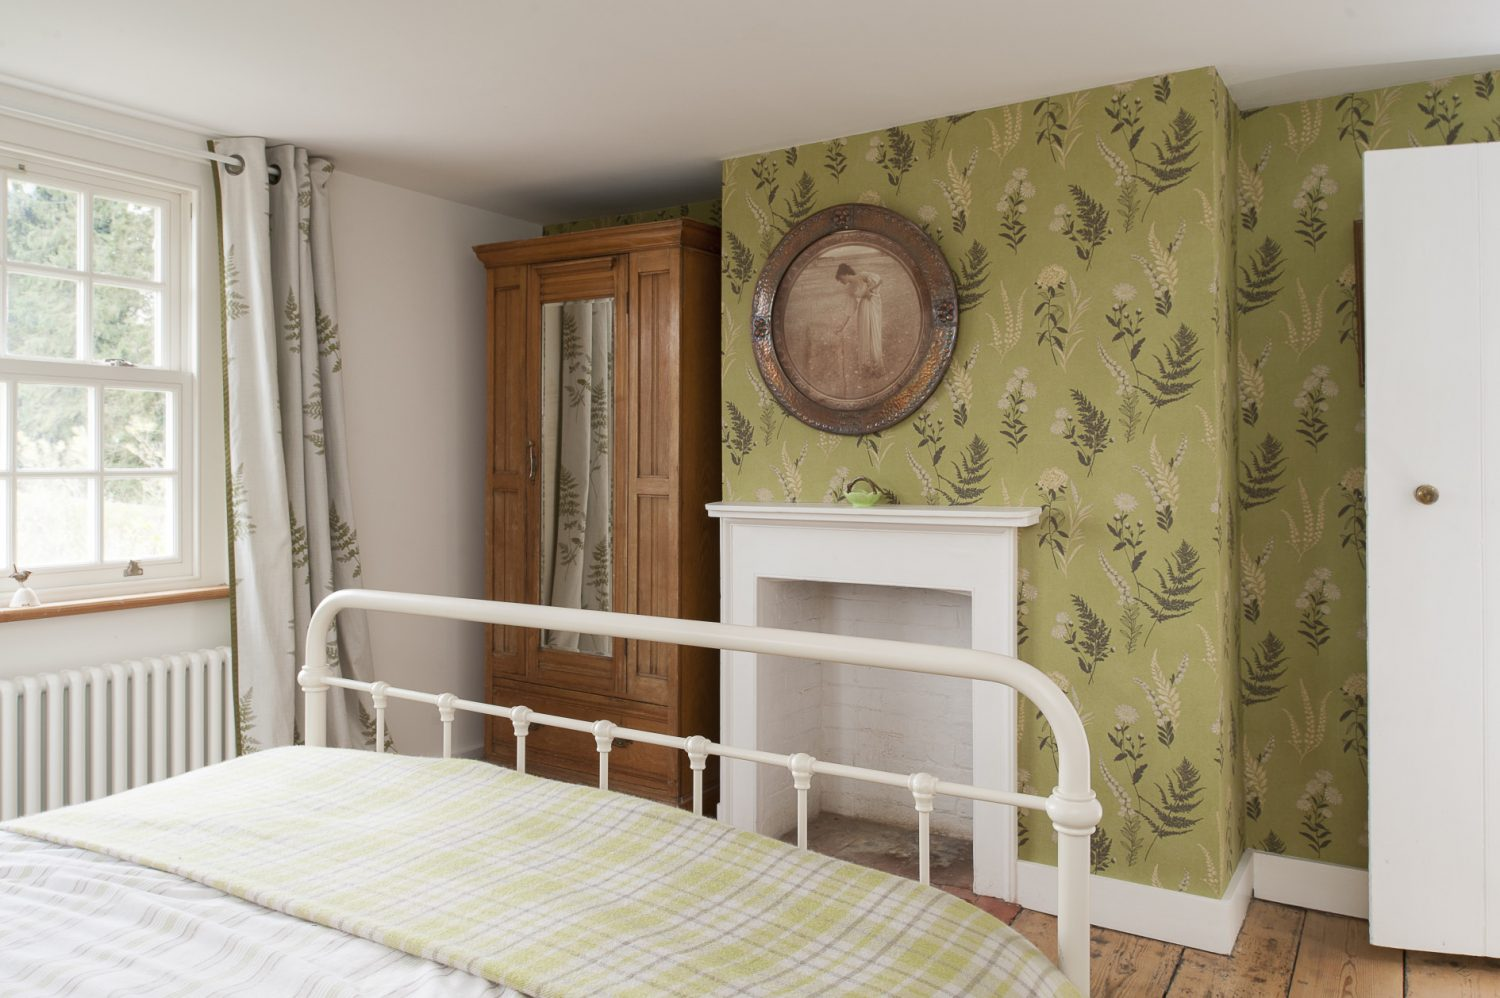 Jen fell in love with Fired Earth's wallpaper 'After Eight' which she has used on the feature wall and chimney breast at the foot of the bed